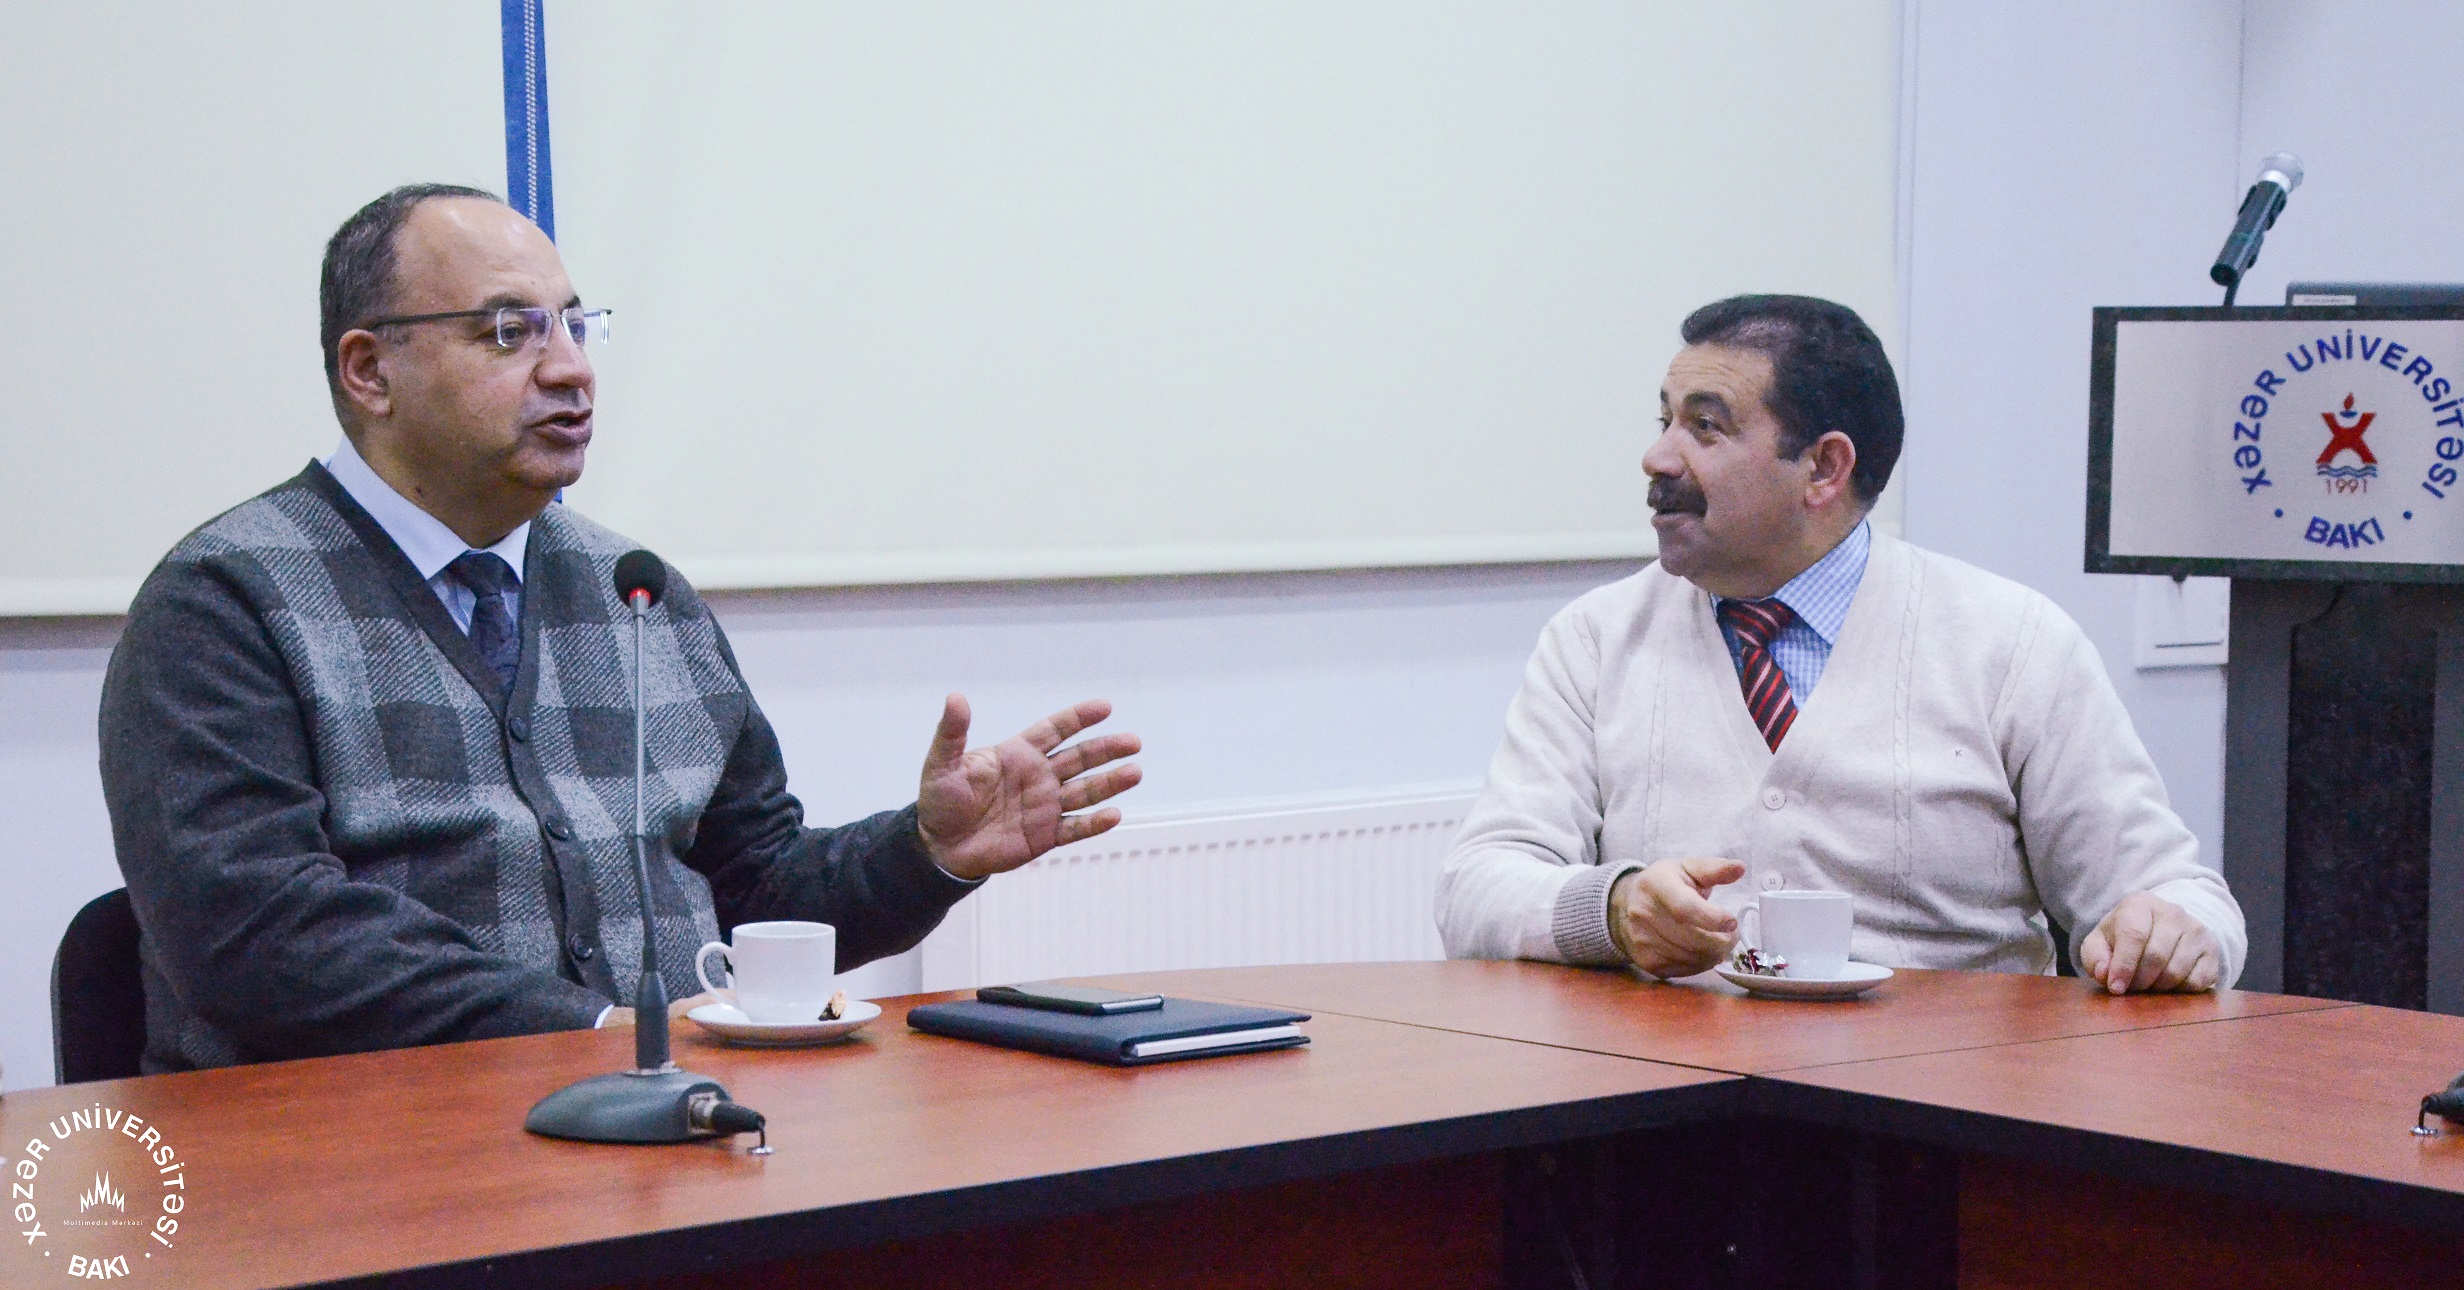 School of Humanities and Social Sciences and School of Engineering and Applied Sciences Meet with Alumni